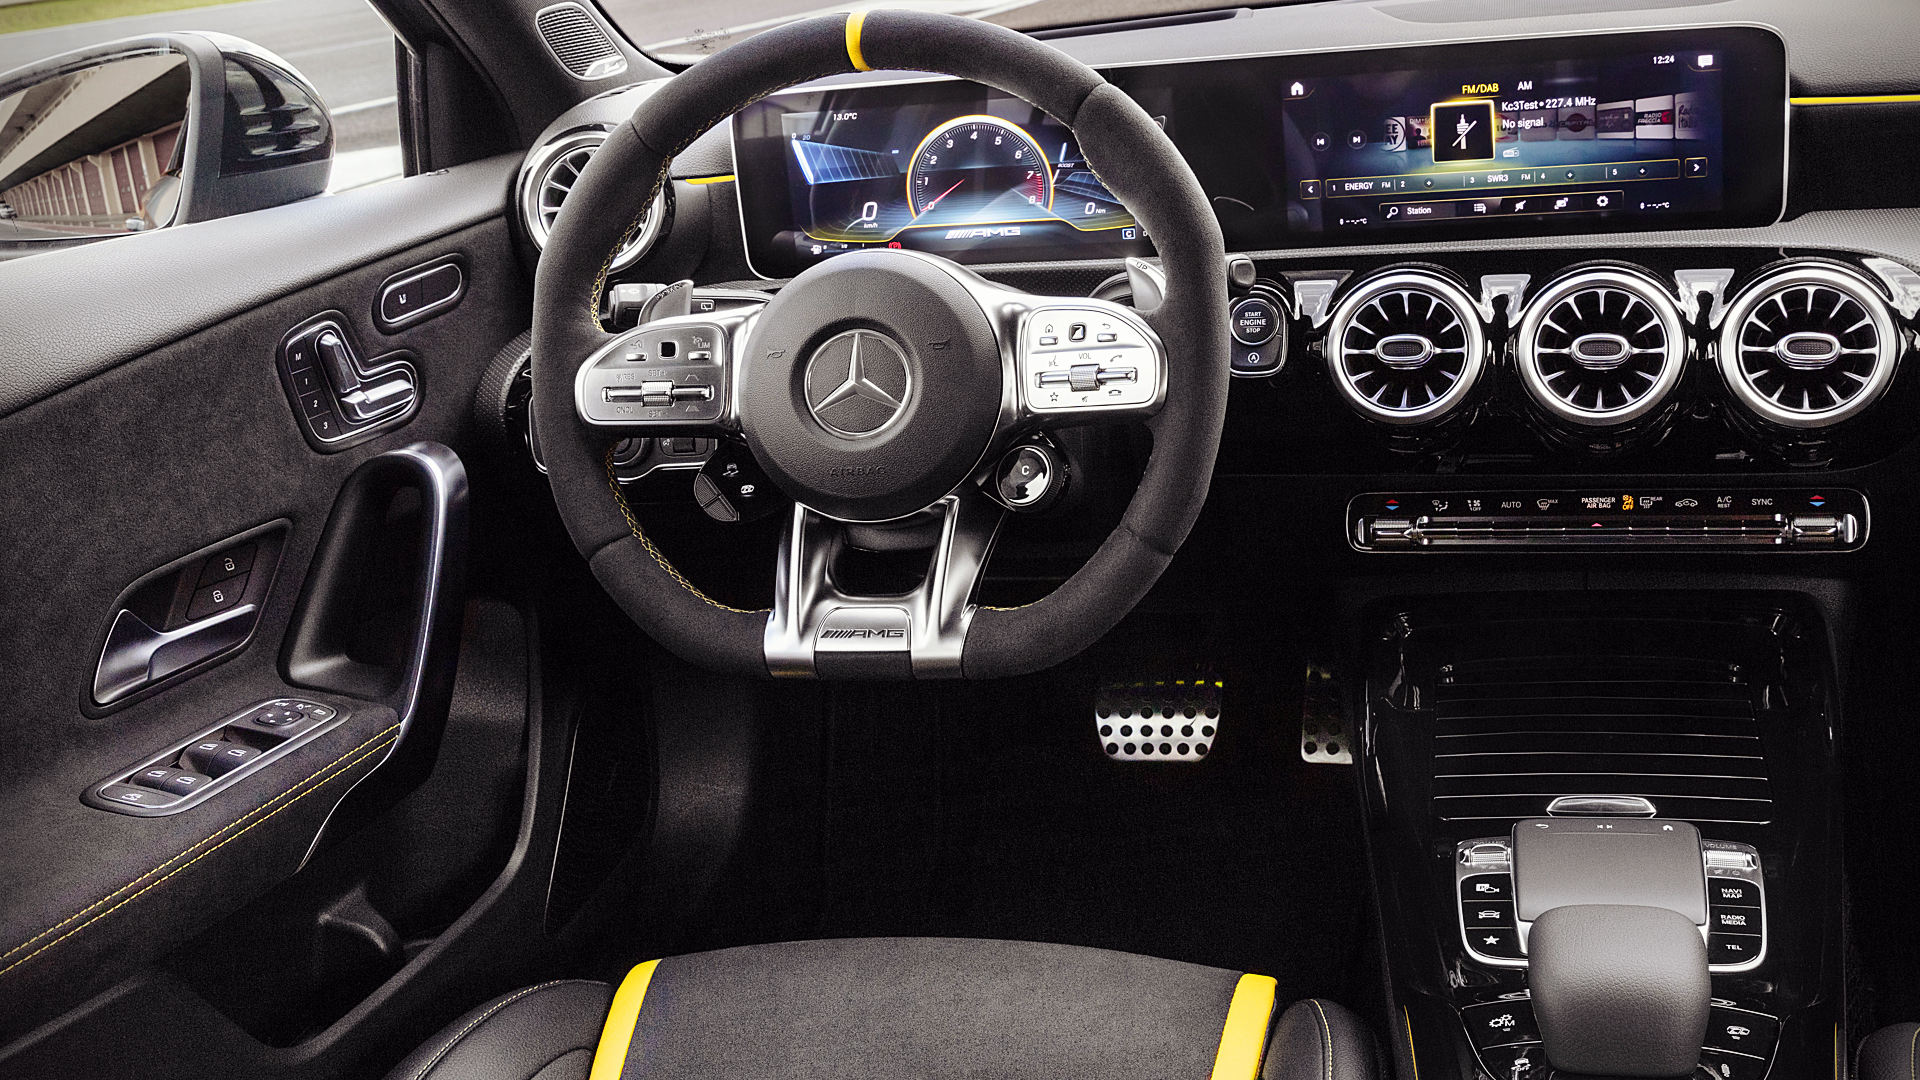 Mercedes A45 AMG 2020 Interior Inside